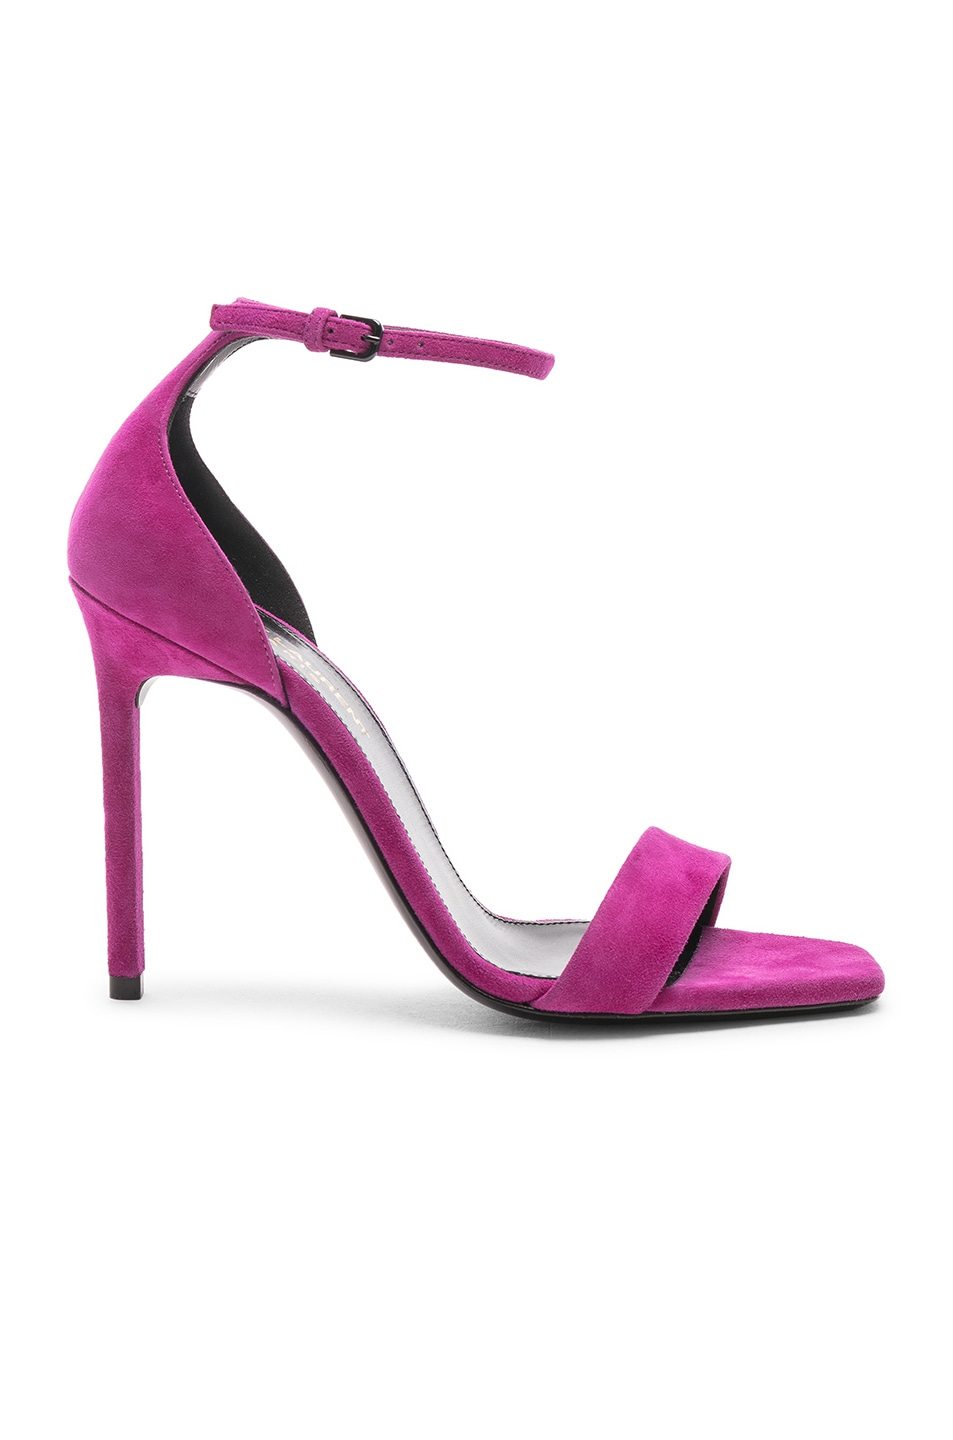 Image 1 of Saint Laurent Ankle High Heels in Loulou Pink